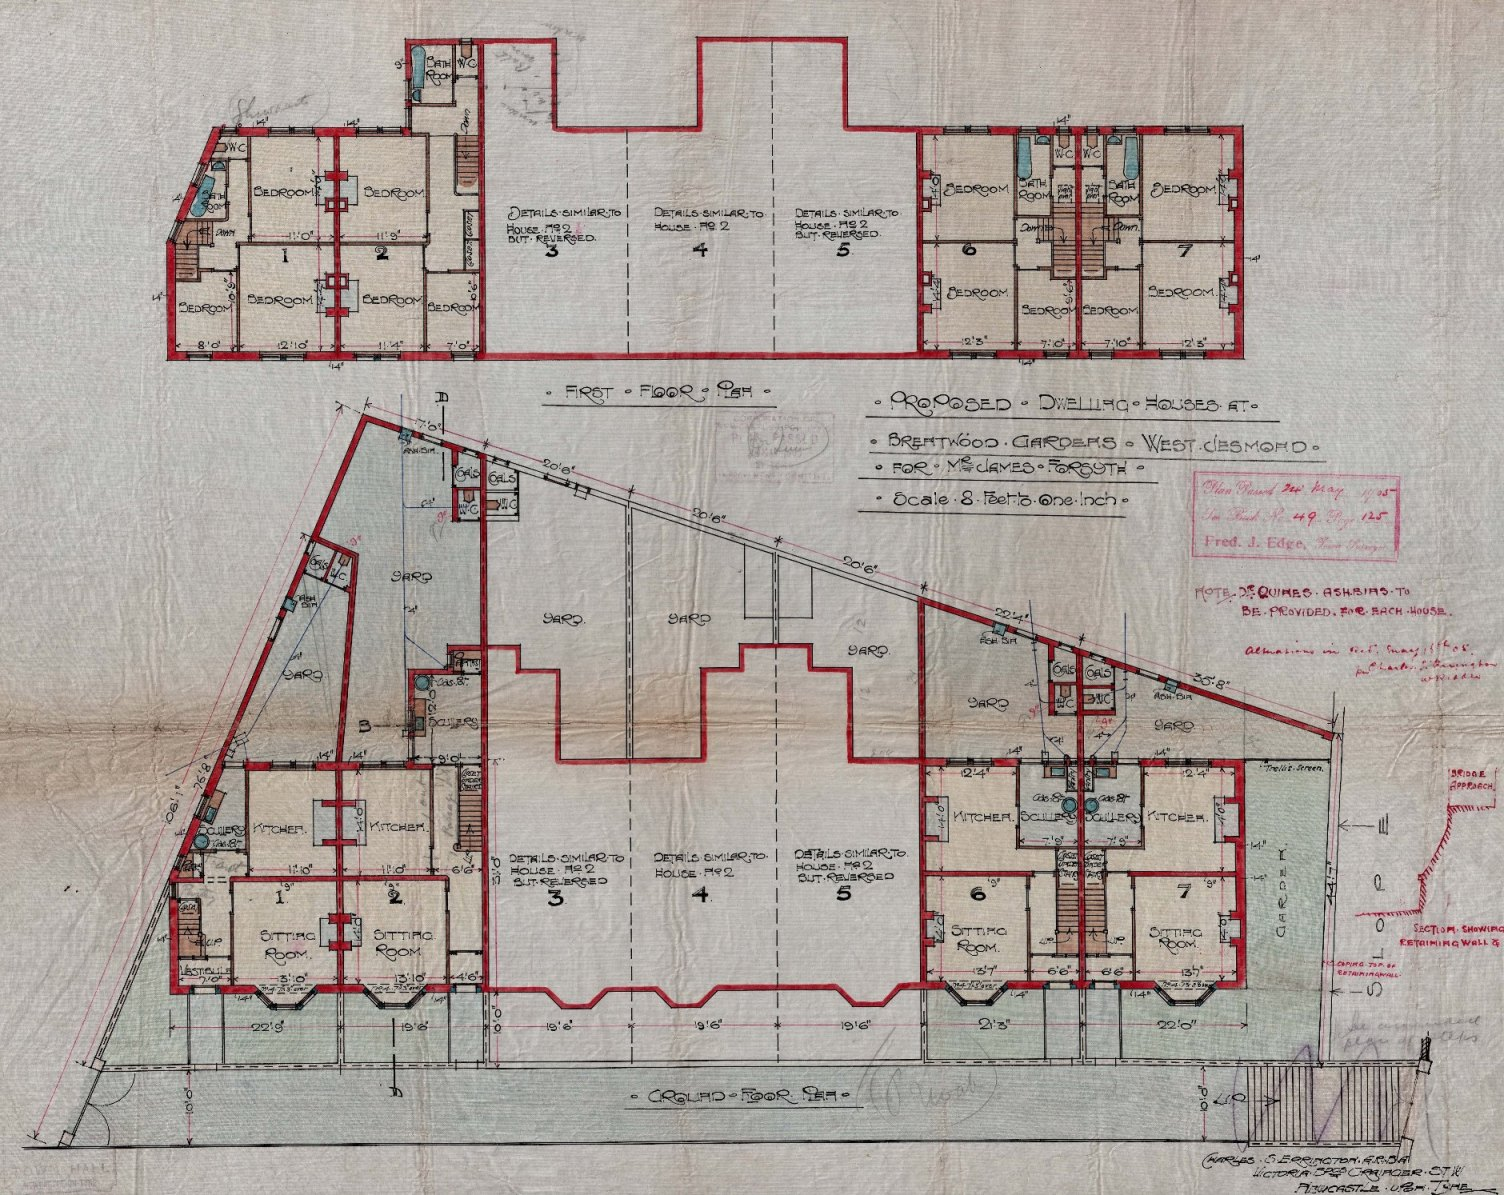 Floor Plans Of Houses At Brentwood Gardens, Jesmond, 1905 (TWAM Ref.  T186/21558)